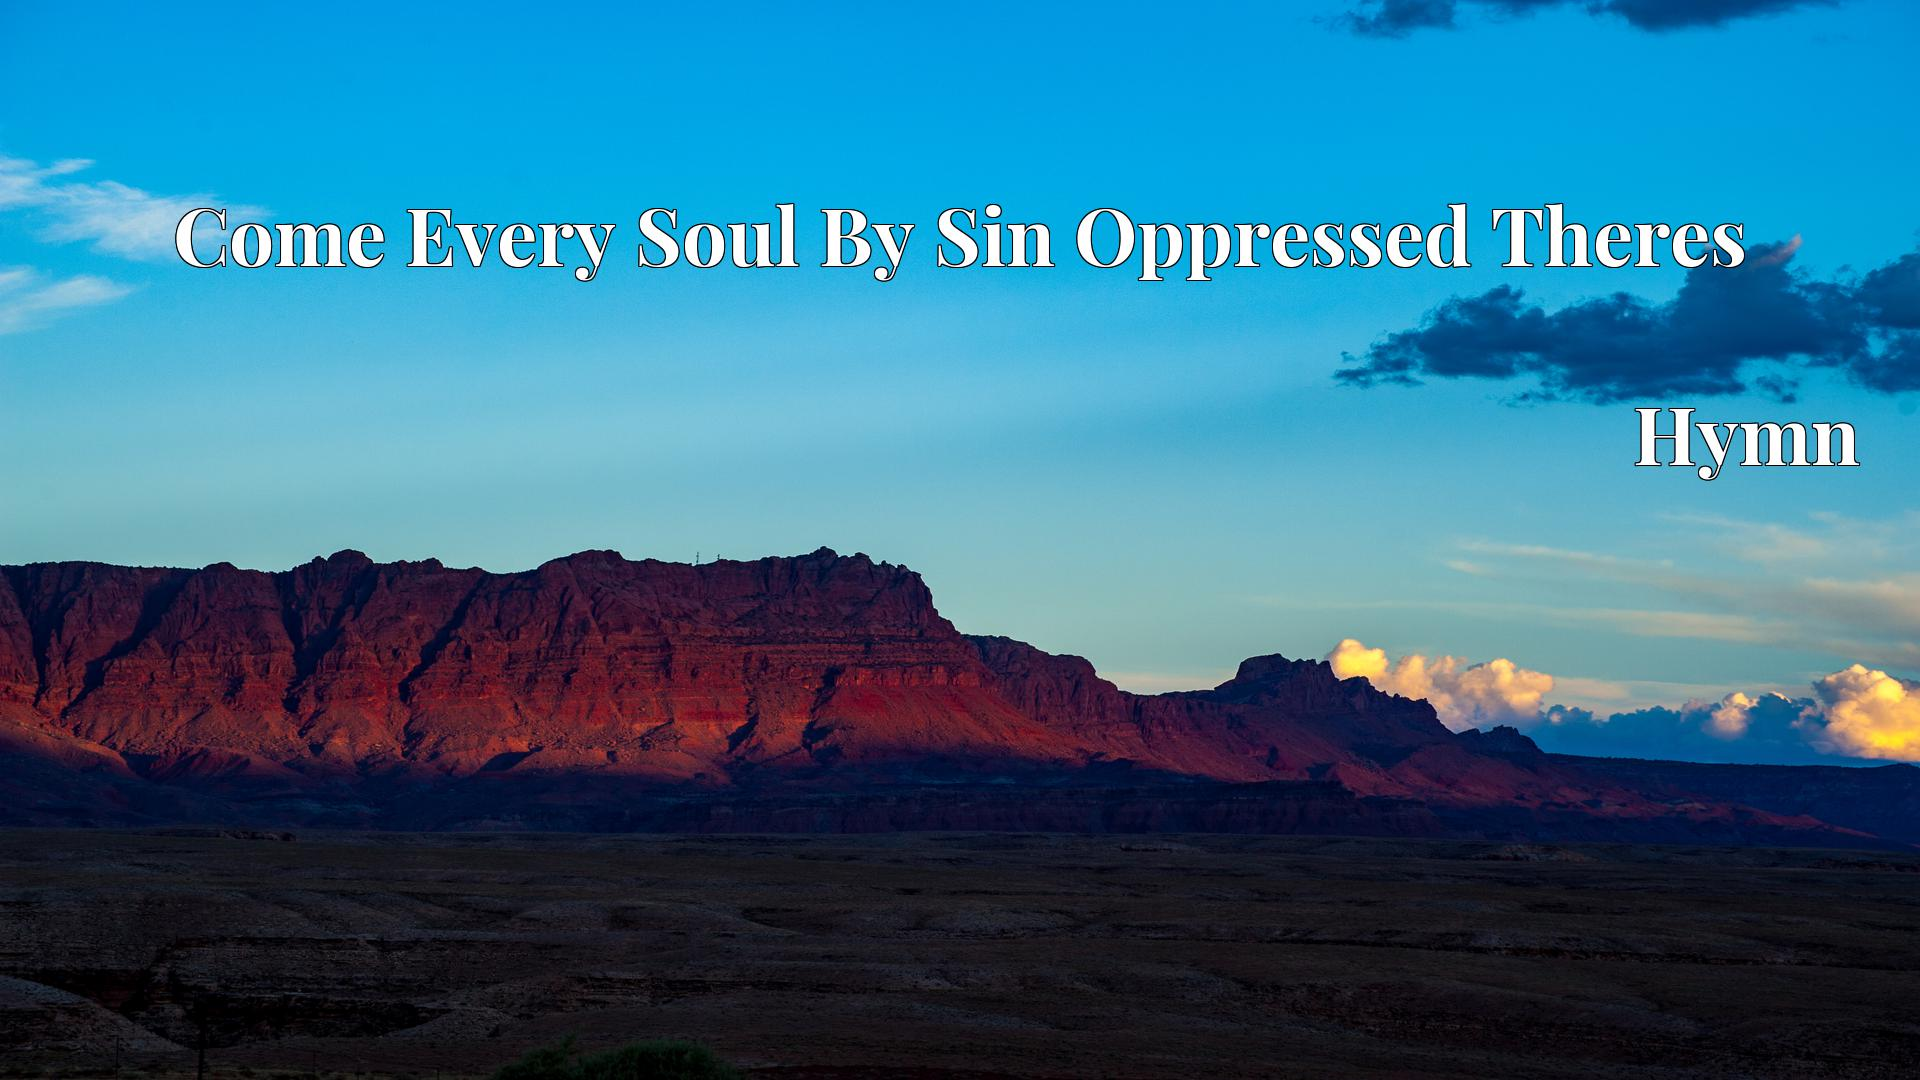 Come Every Soul By Sin Oppressed Theres - Hymn